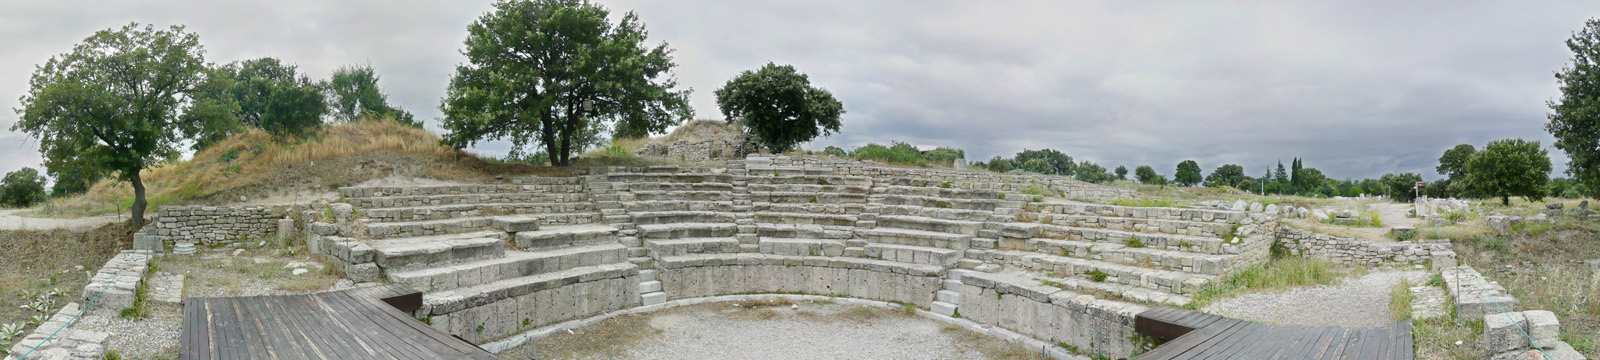 Odeon of Ilion